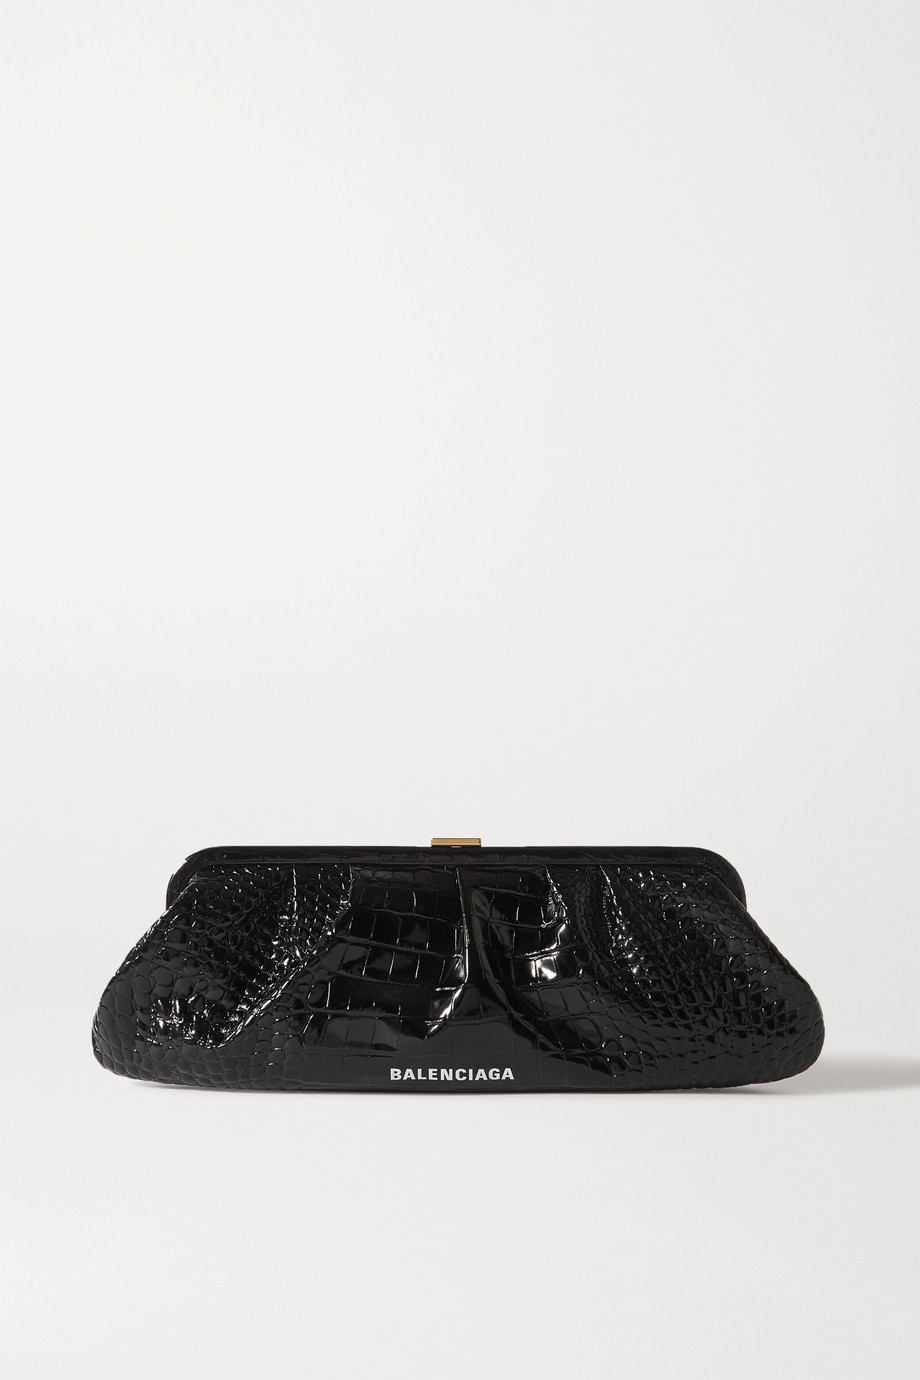 Balenciaga Cloud XL printed croc-effect leather clutch